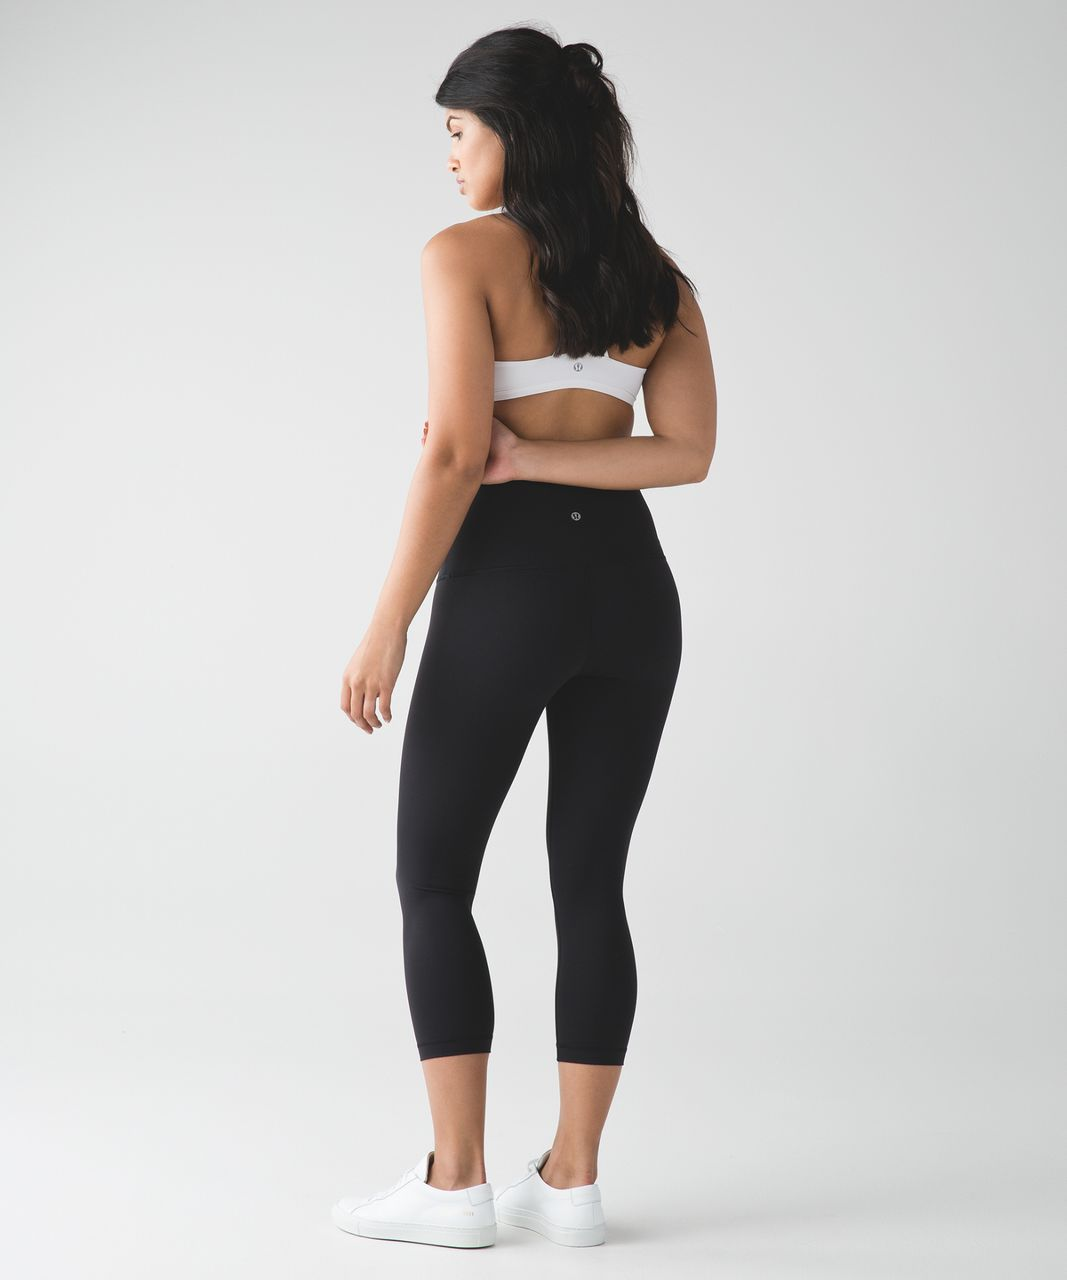 Lululemon Wunder Under Crop (Hi-Rise) - Black